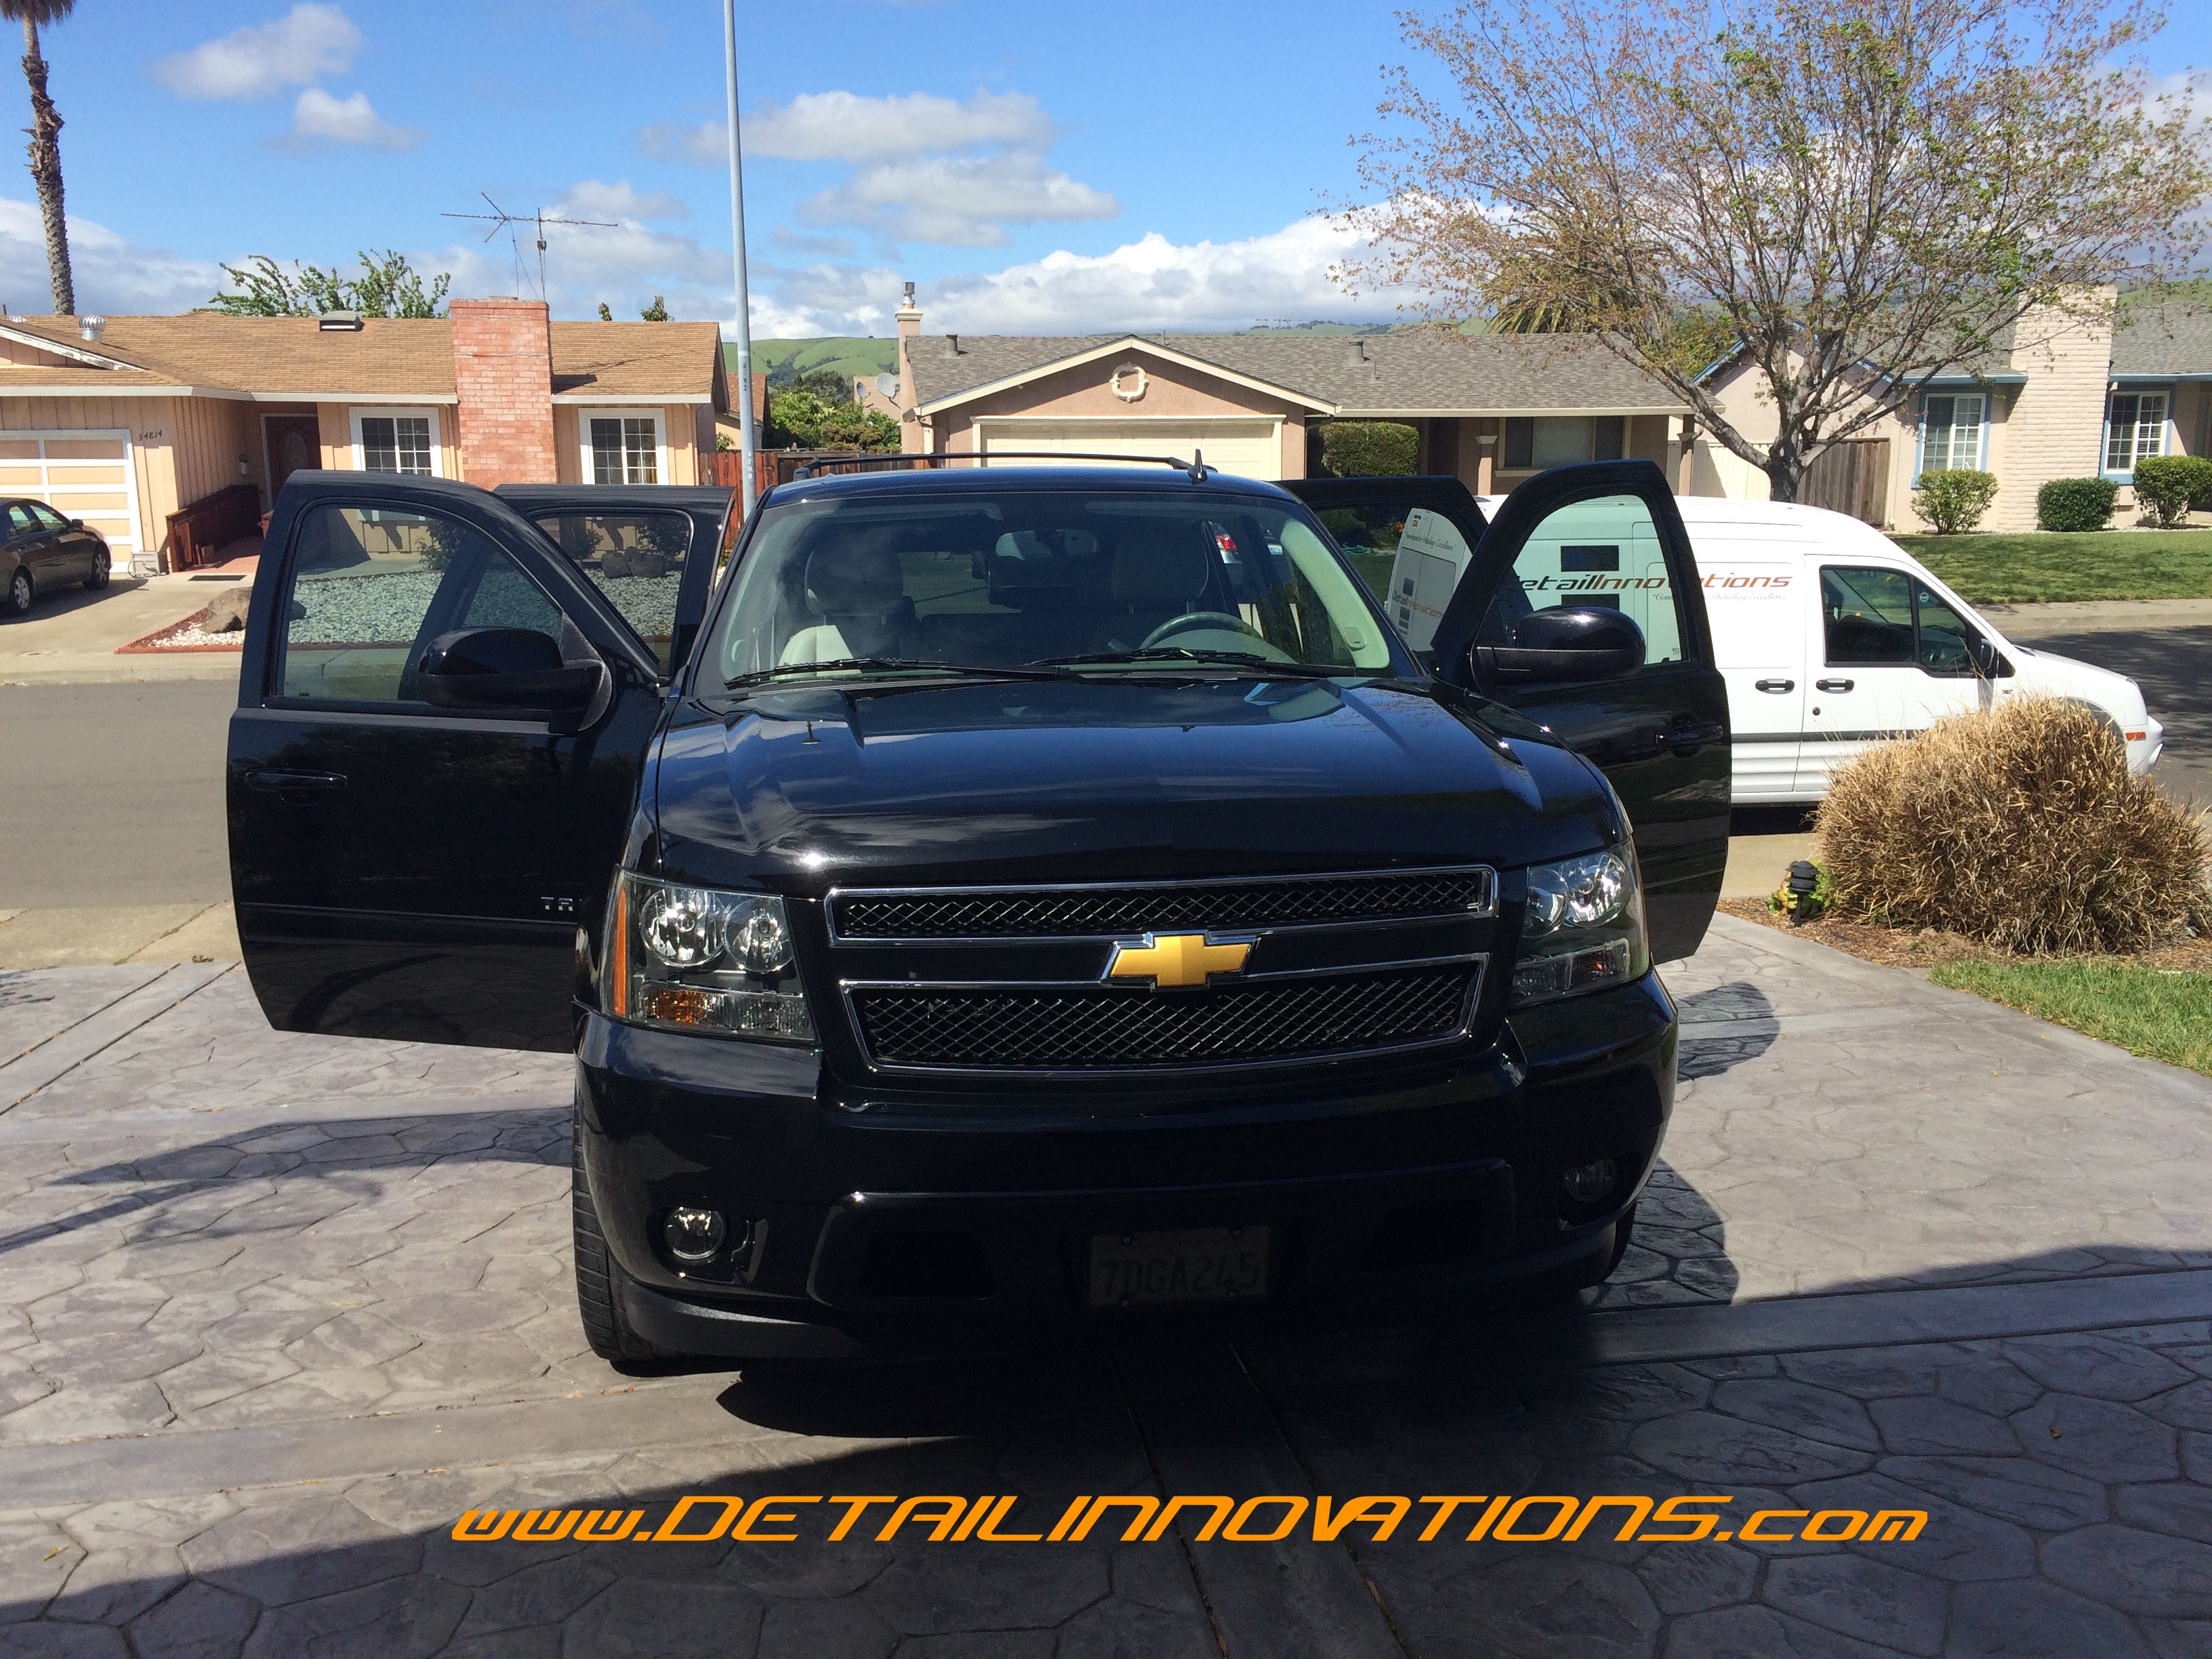 BLACK Chevy Tahoe